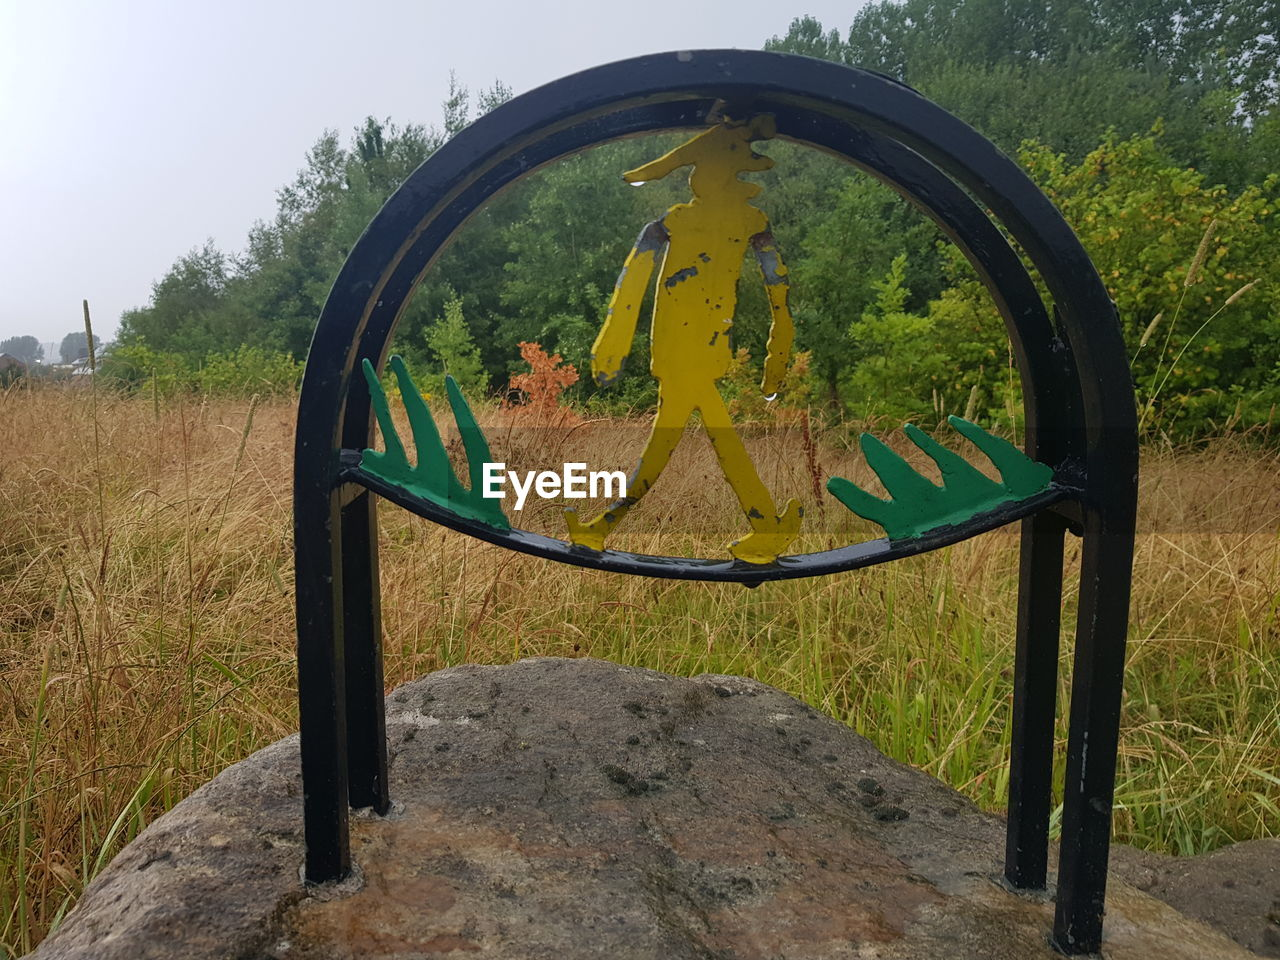 plant, tree, day, nature, no people, geometric shape, circle, yellow, shape, green color, sky, metal, outdoors, field, playground, park, land, arch, glass - material, seat, outdoor play equipment, wheel